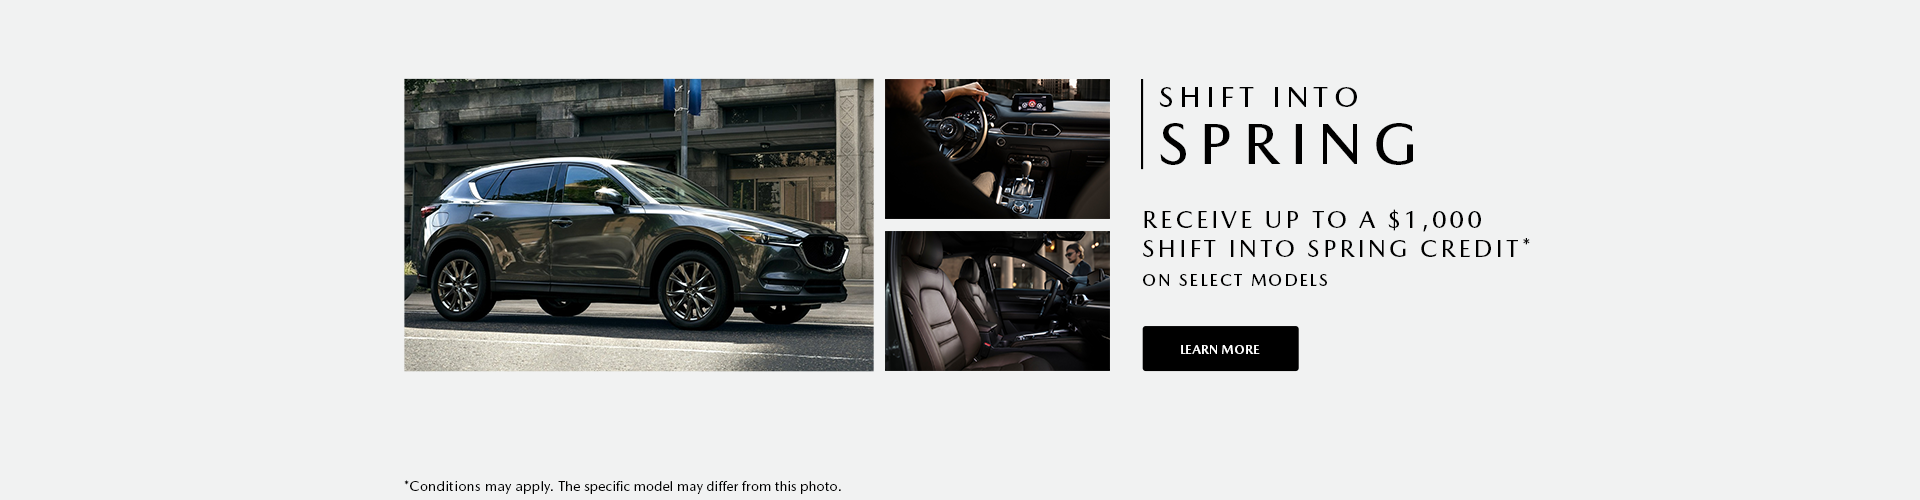 Shift into Spring Sales Event